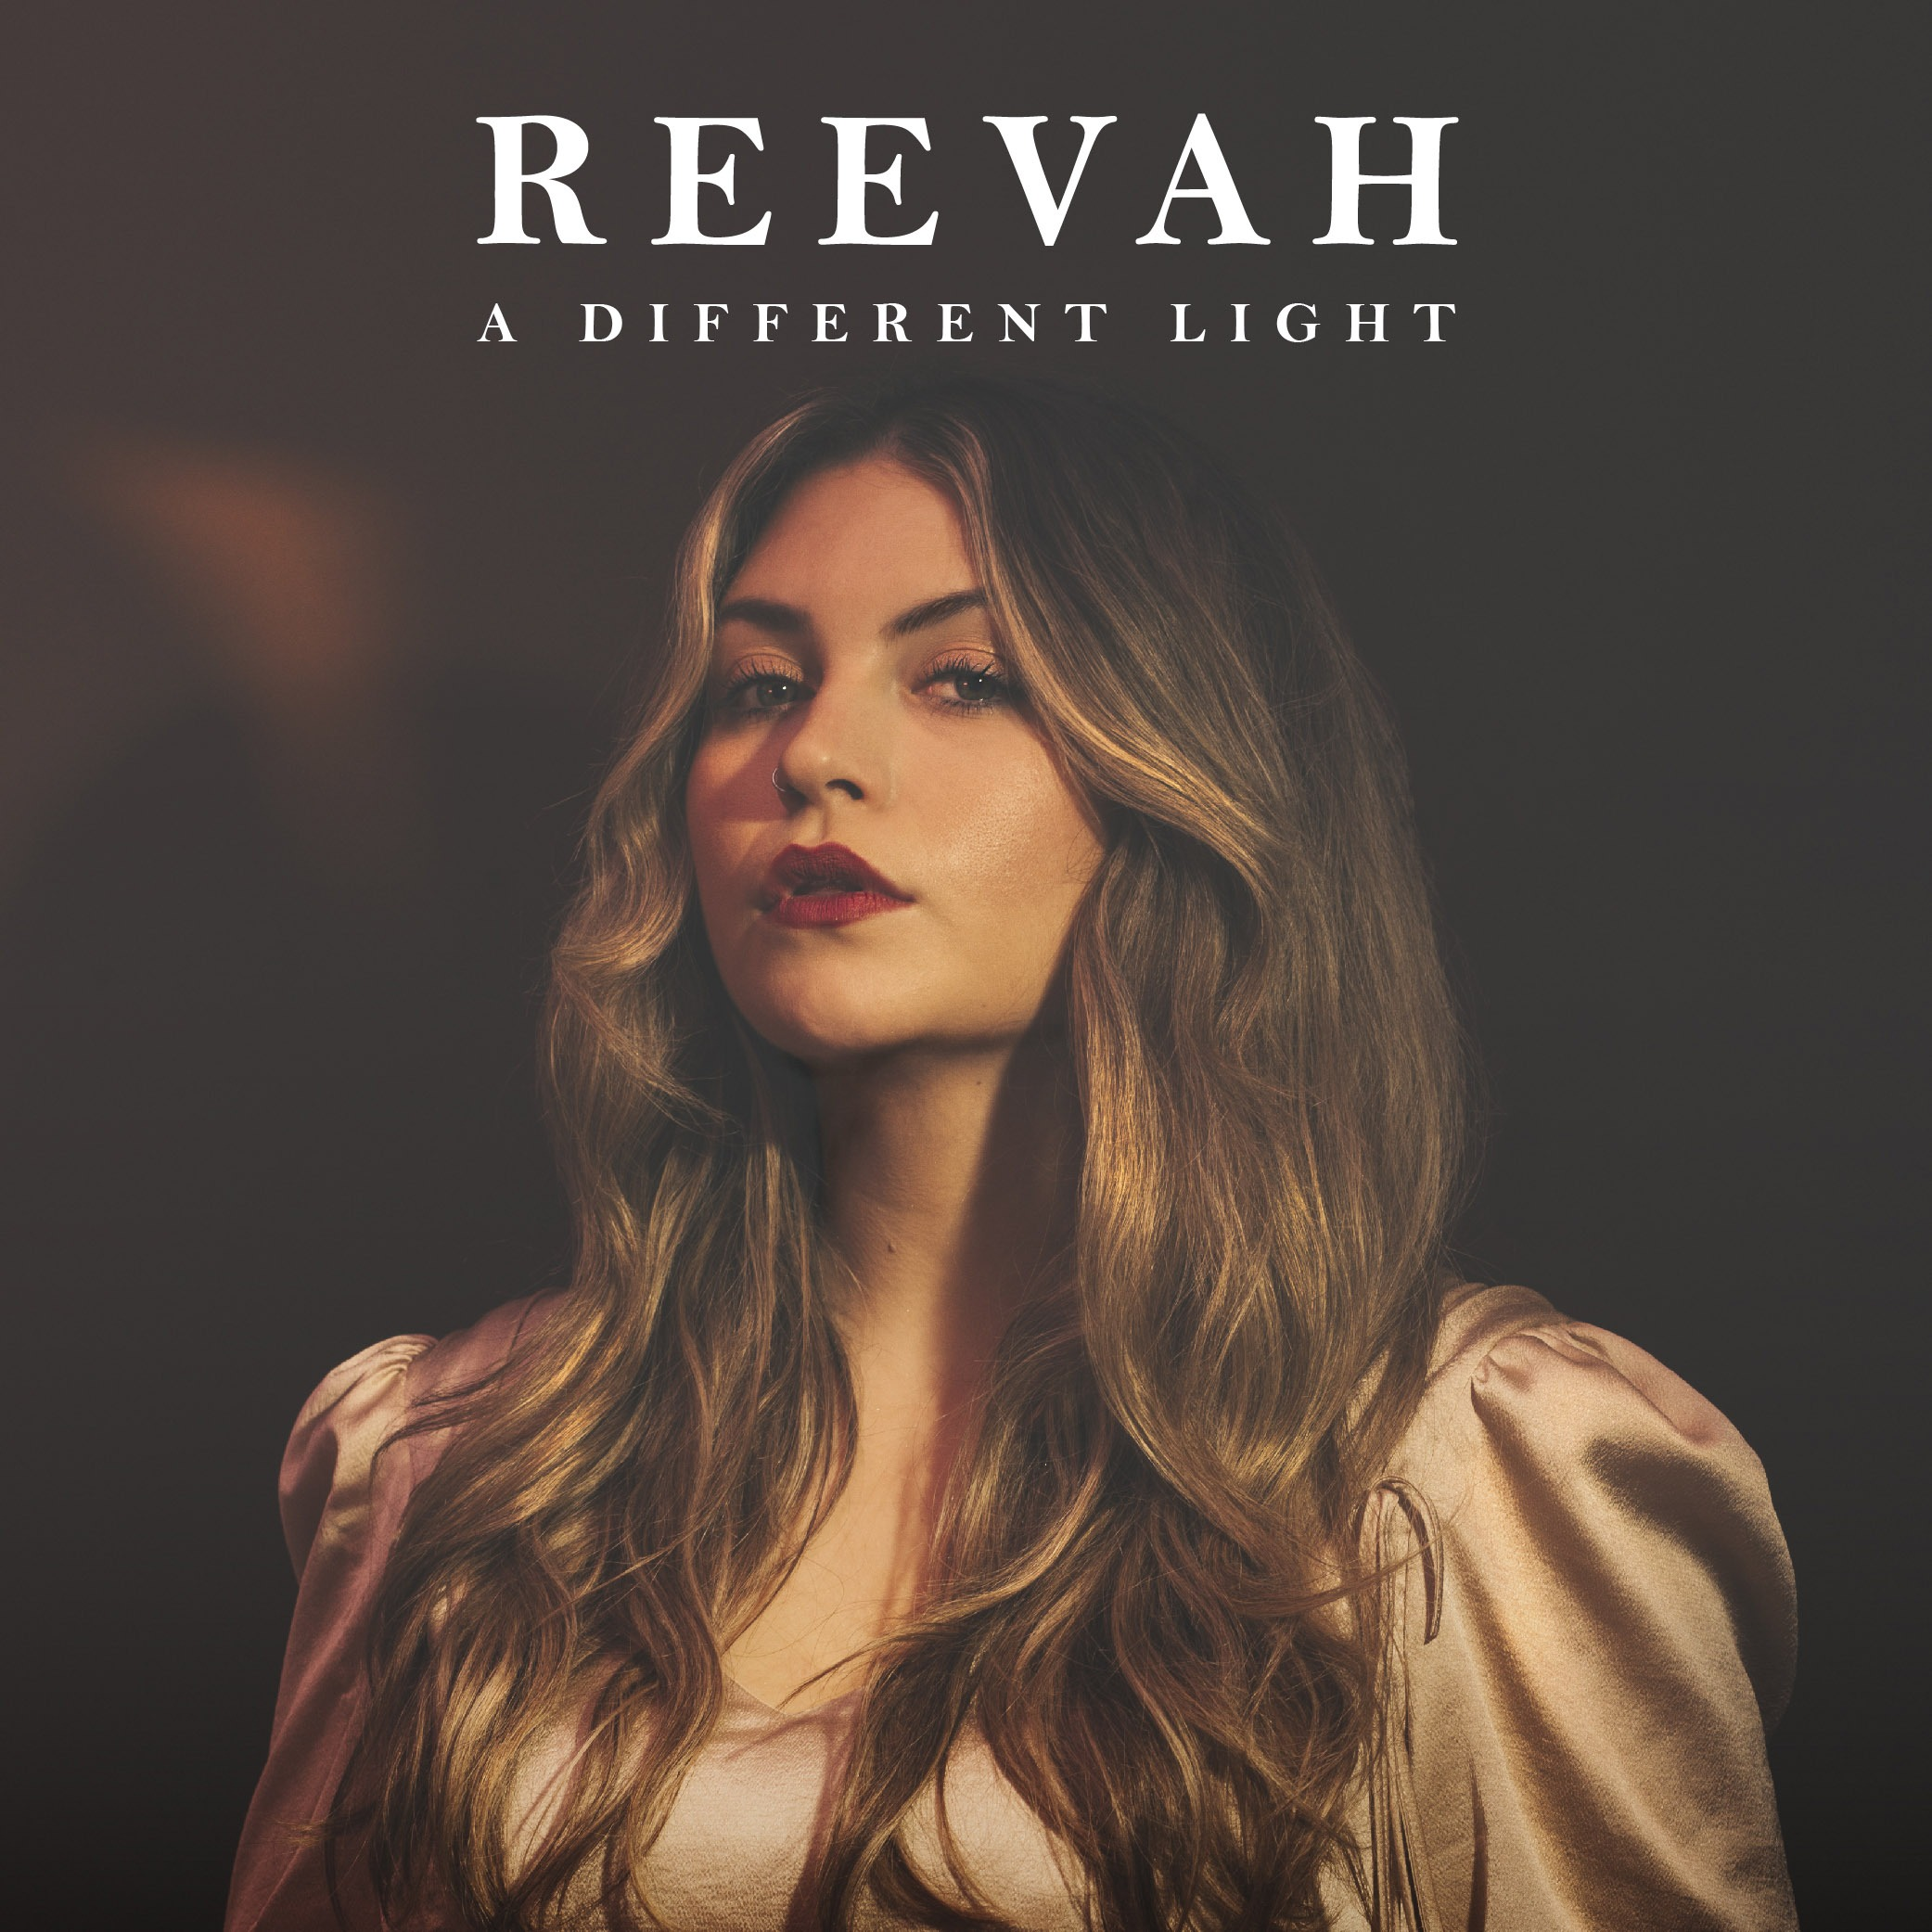 REVIEW: Reevah - A Different Light EP